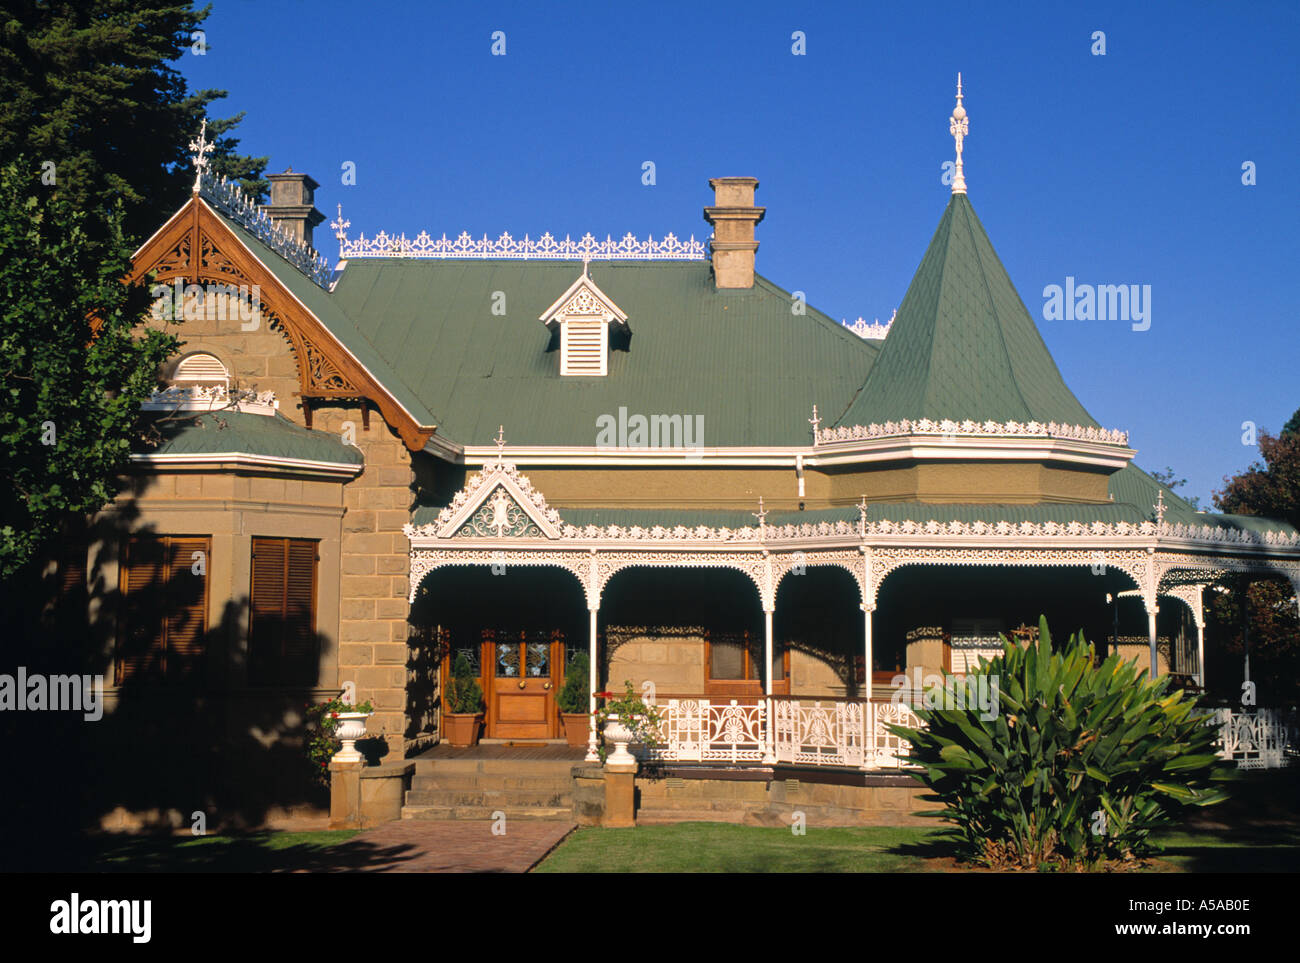 Mimosa Lodge, Oudtshoorn, Klein Karoo, Cape Province, South Africa - Stock Image